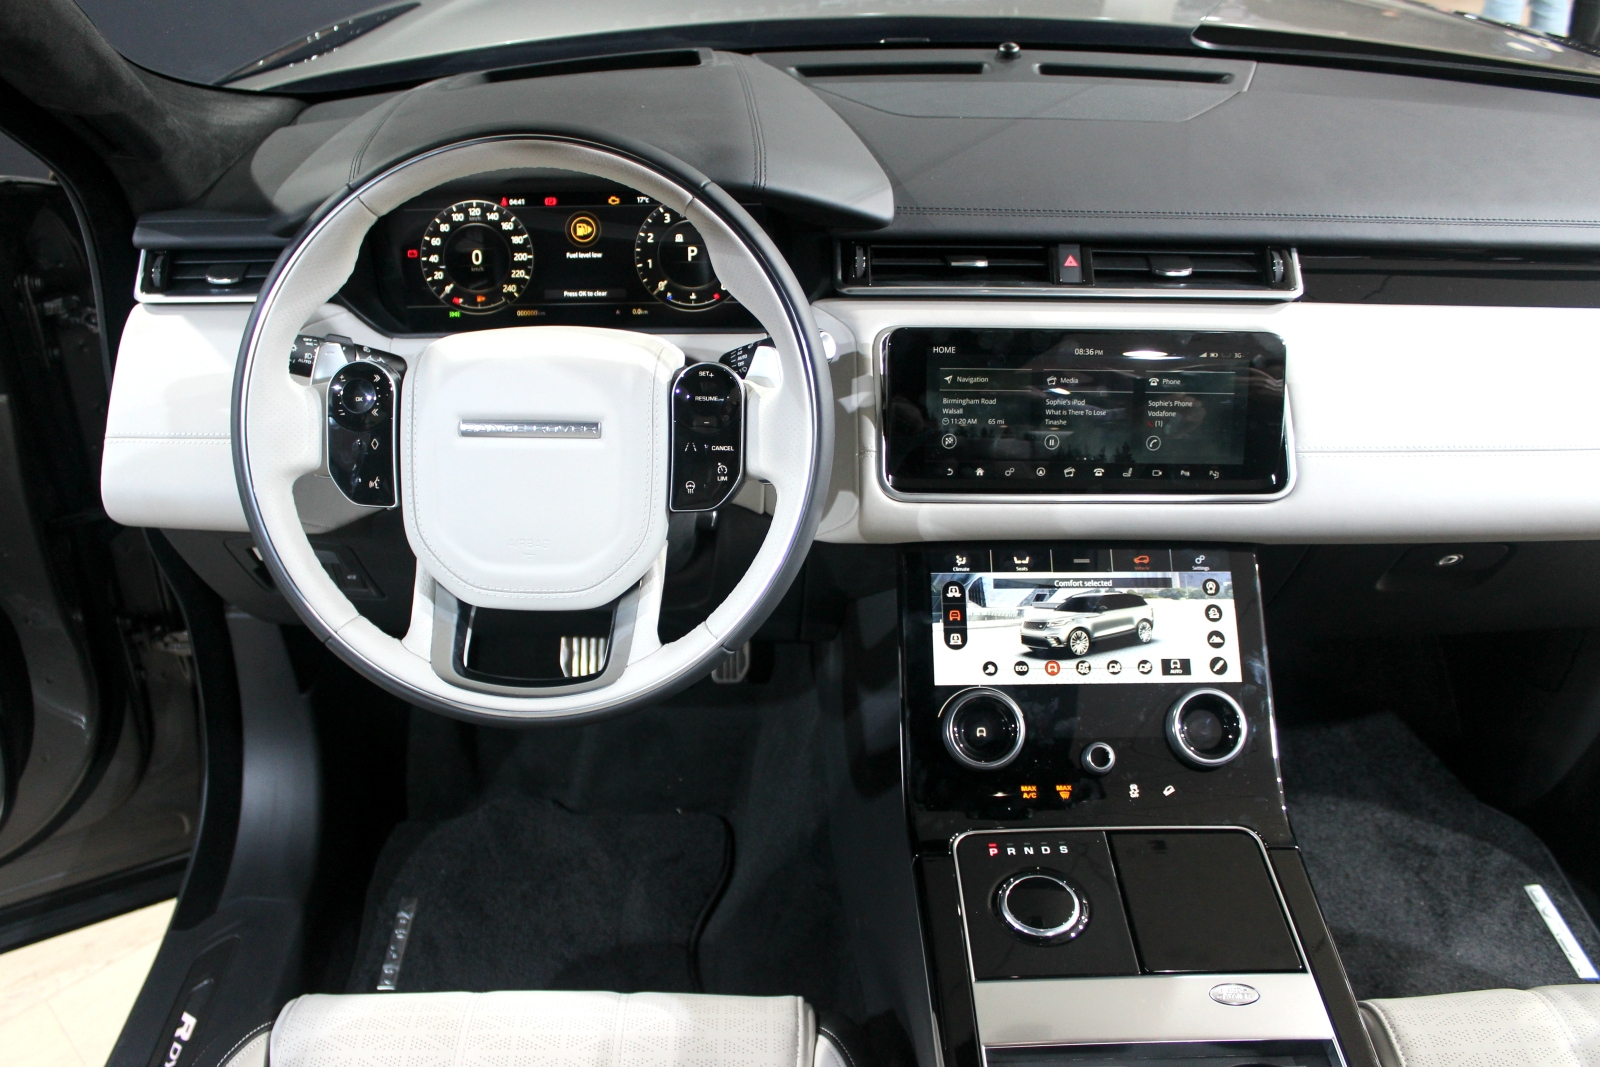 Range rover velar et la mani re vid o en direct du for Interieur range rover velar